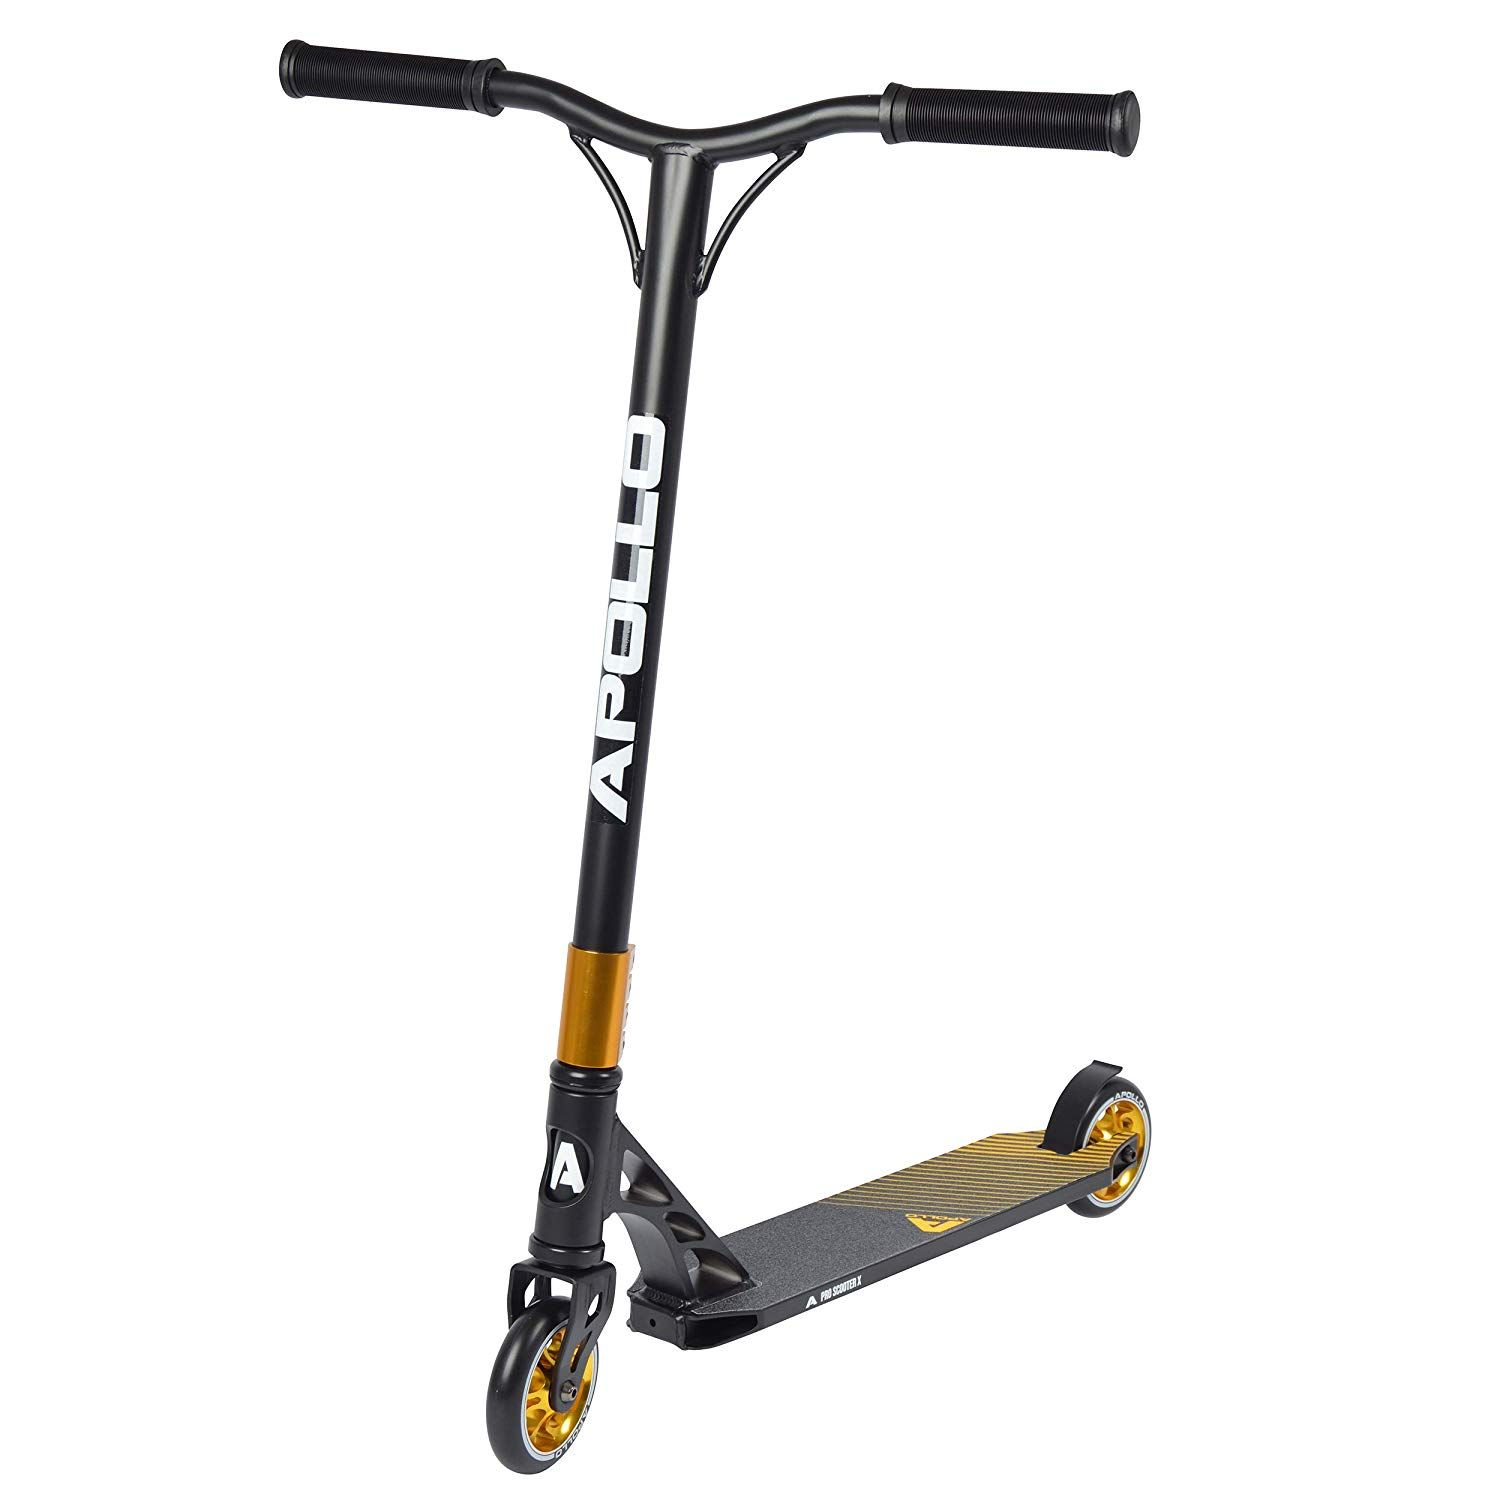 Amazon Kugellager Apollo Stunt Scooter Genesis Pro X Gold Highquality Profi